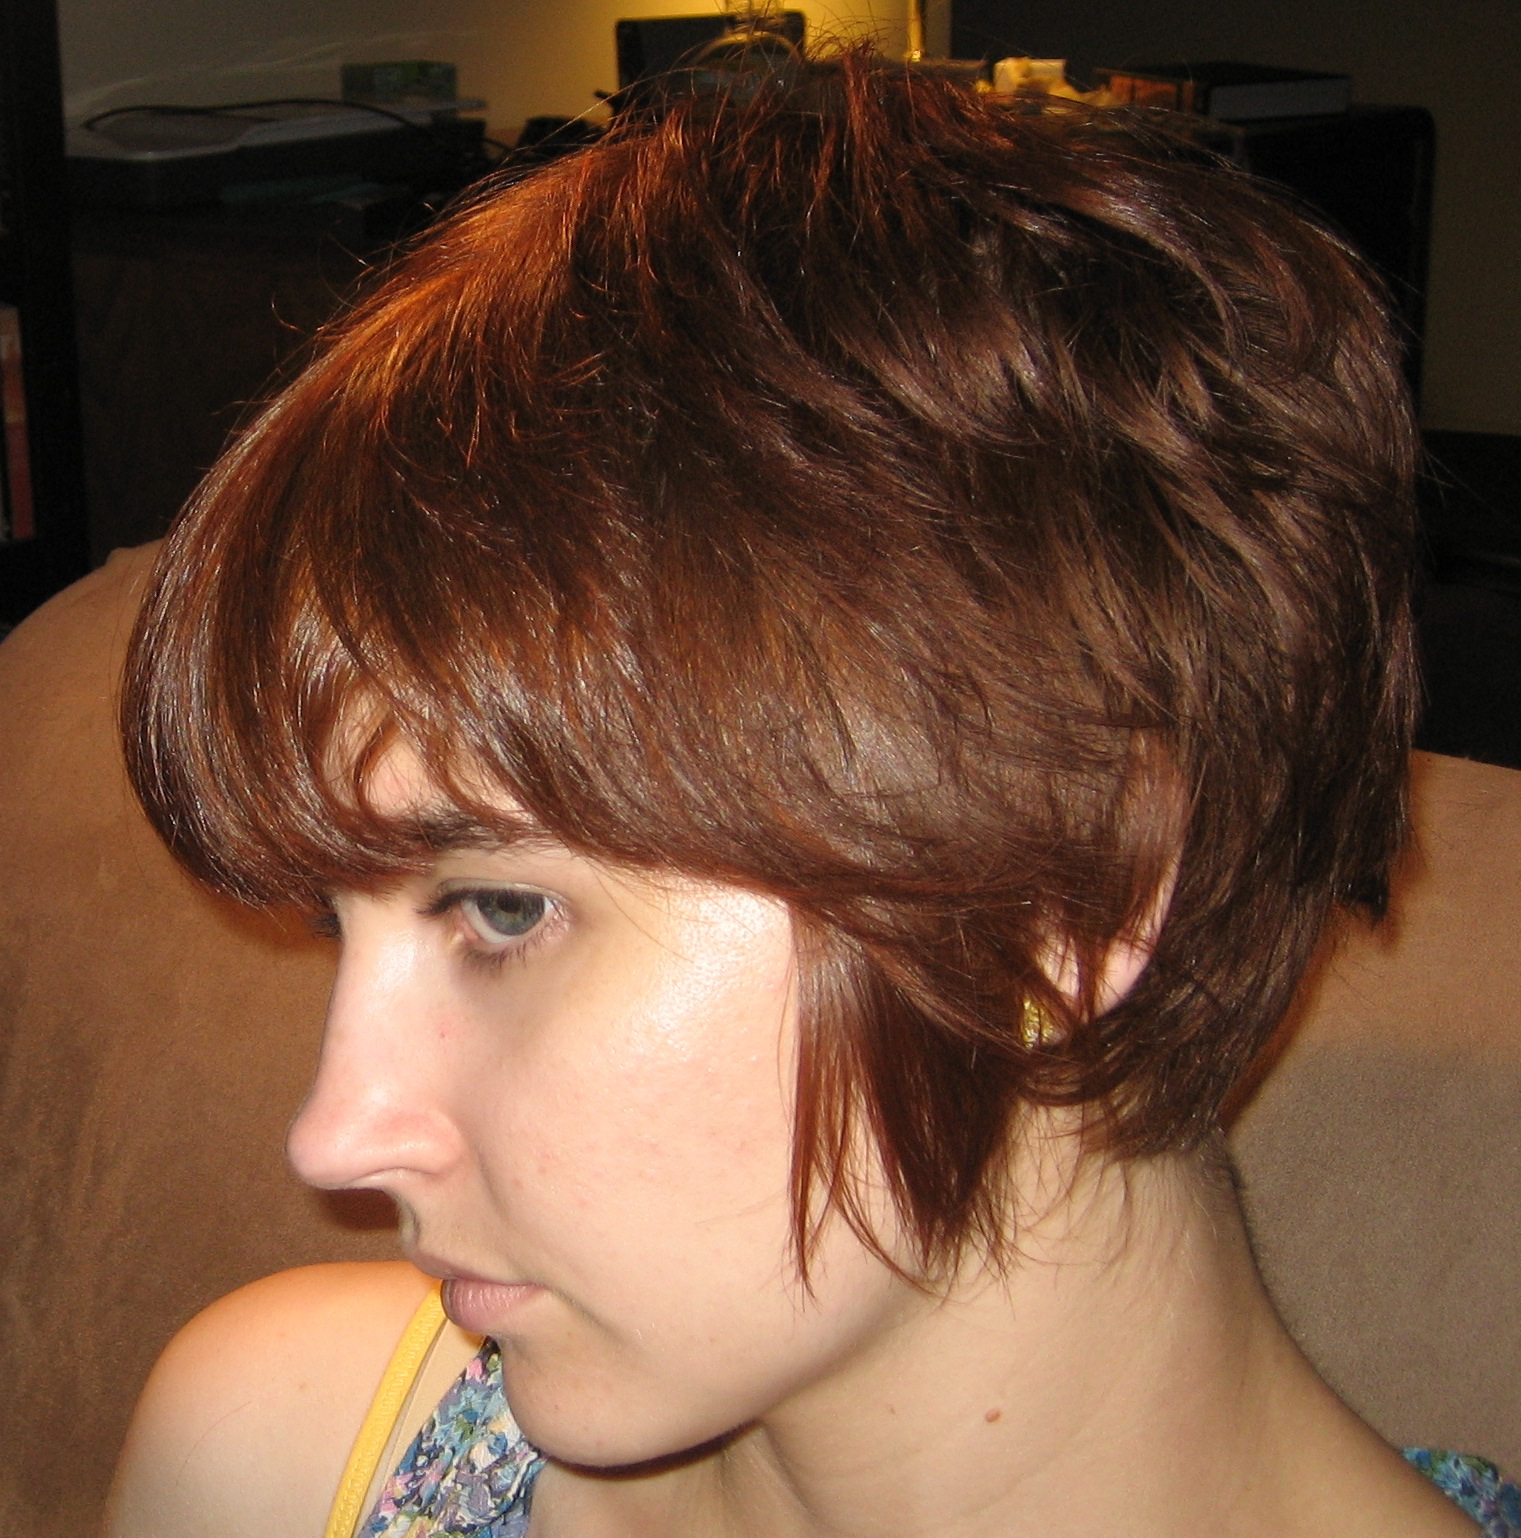 Brilliant Absolutely Hating A Style Hair 8 Wonderful Hairstyles For Short Hairstyles Gunalazisus